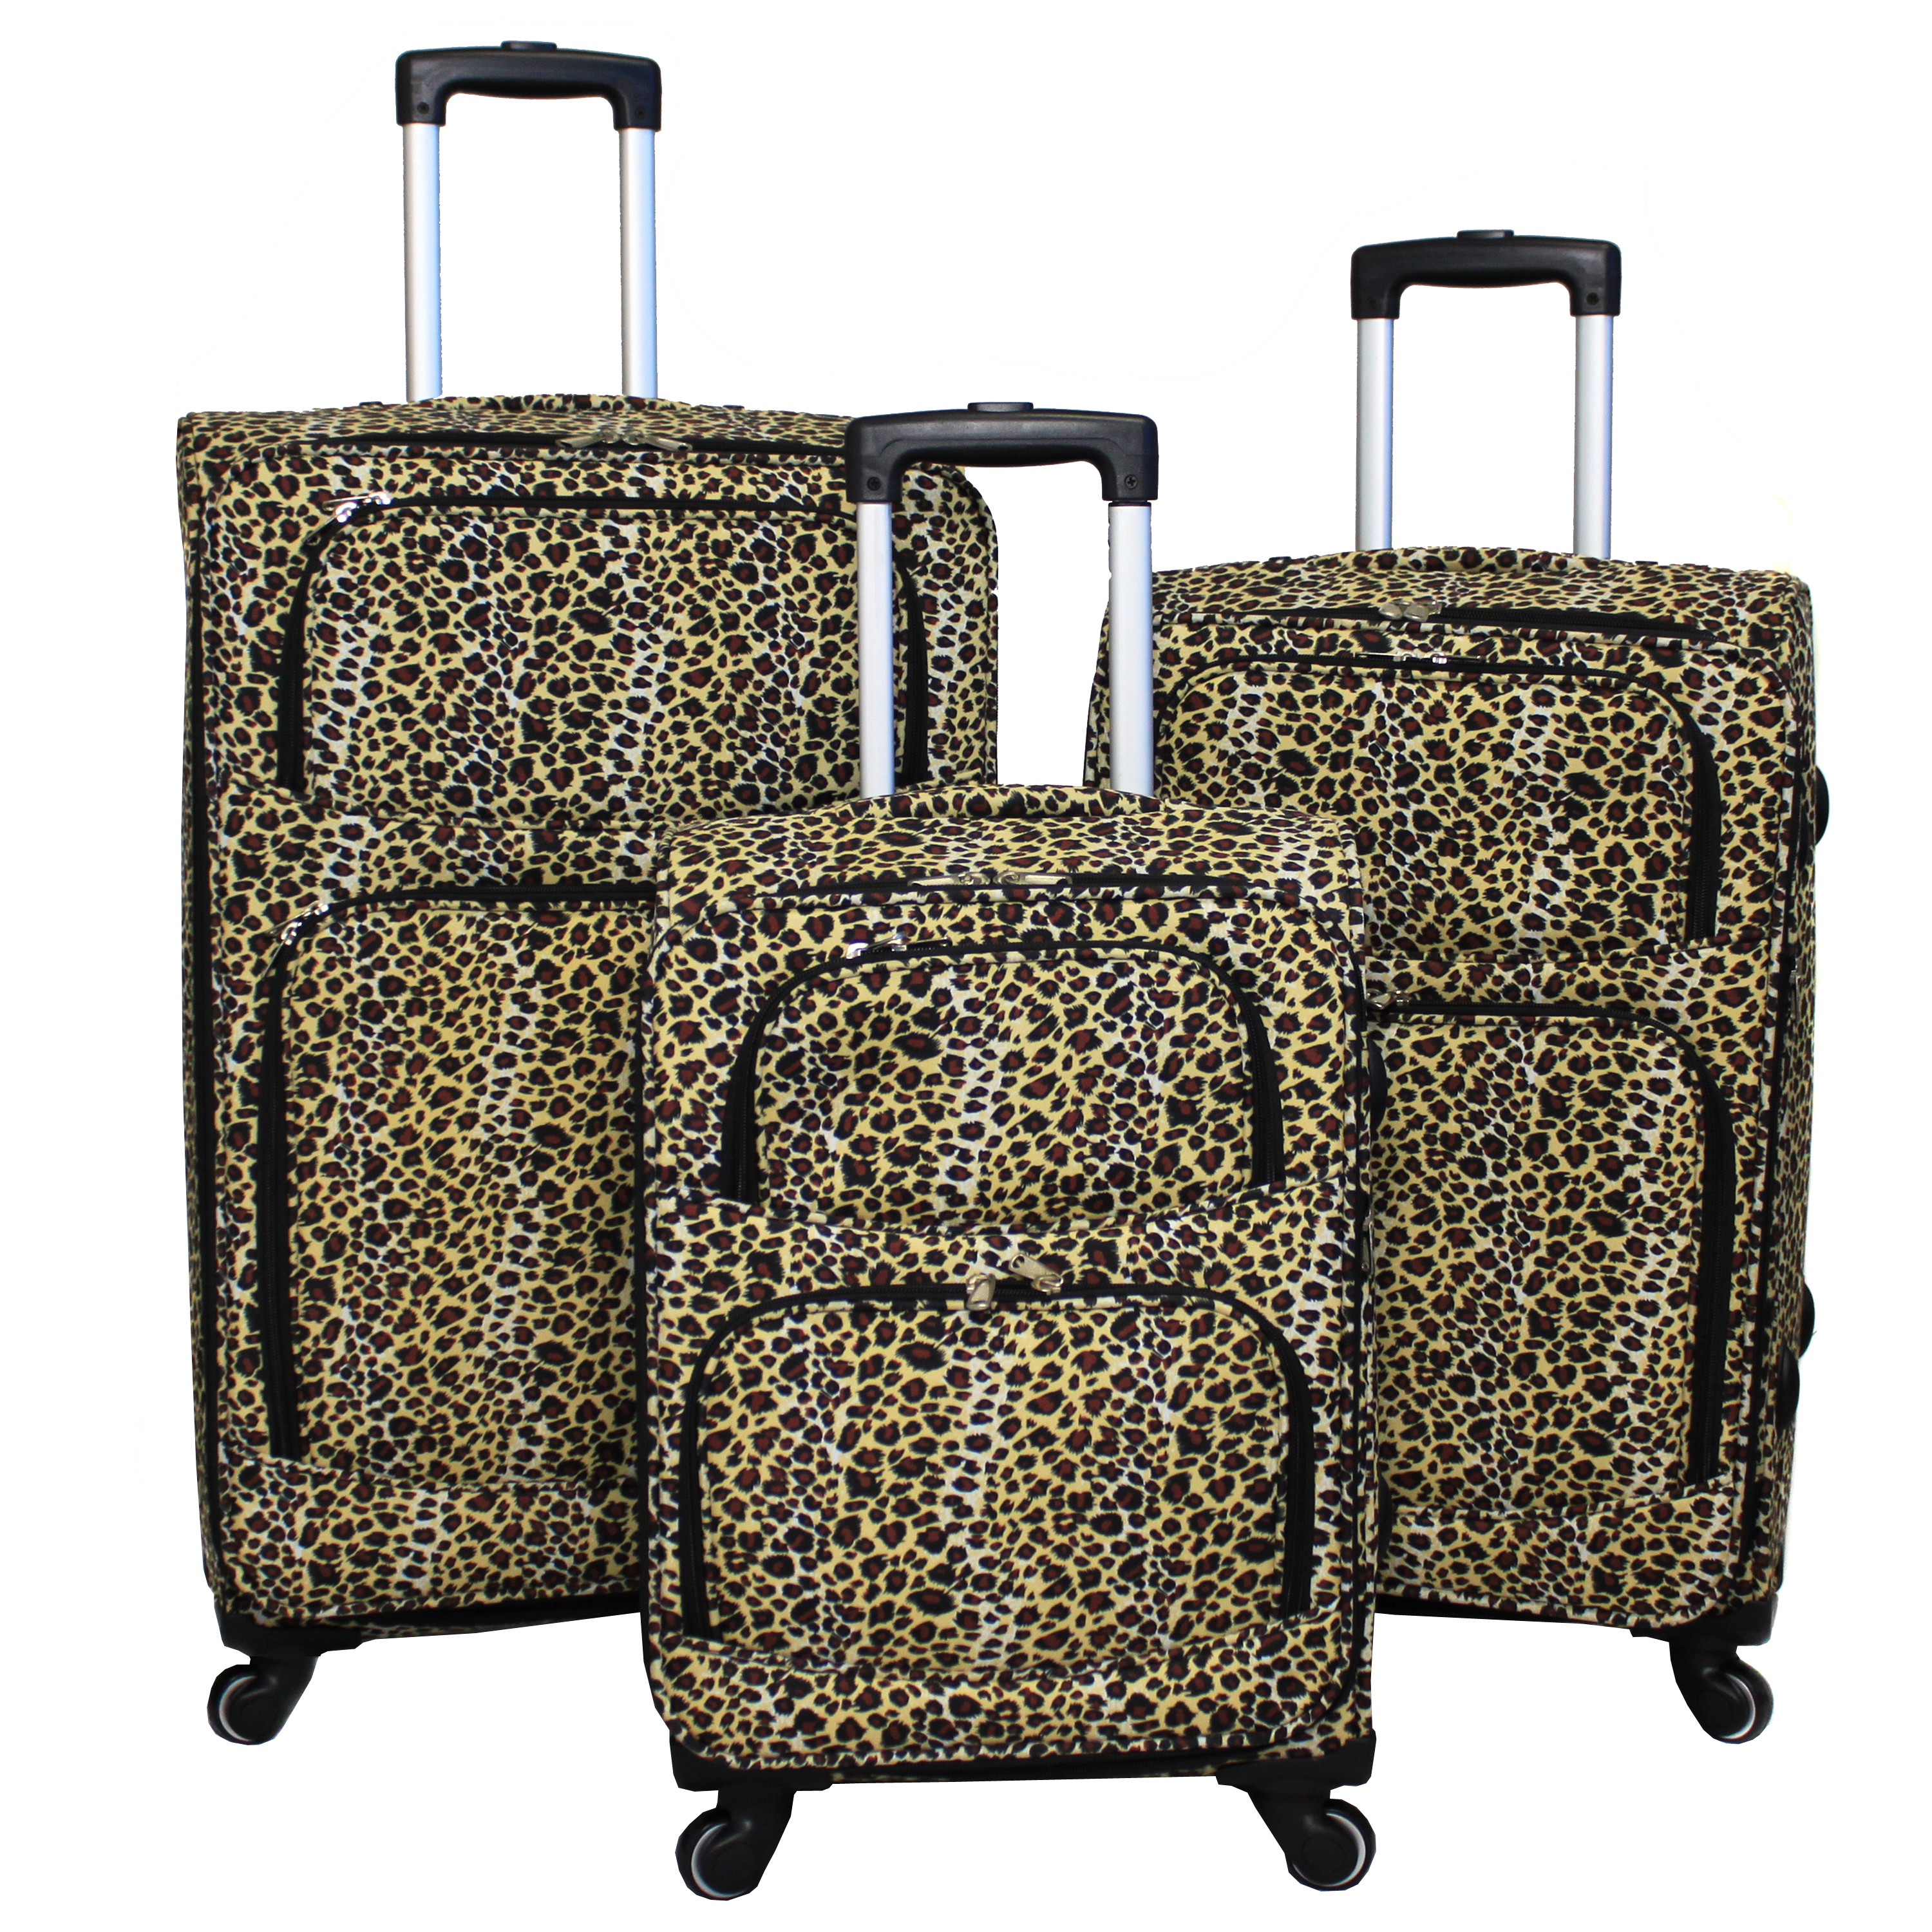 World Traveler Leopard Print 3-Piece Upright Spinner Luggage Set - Black Trim